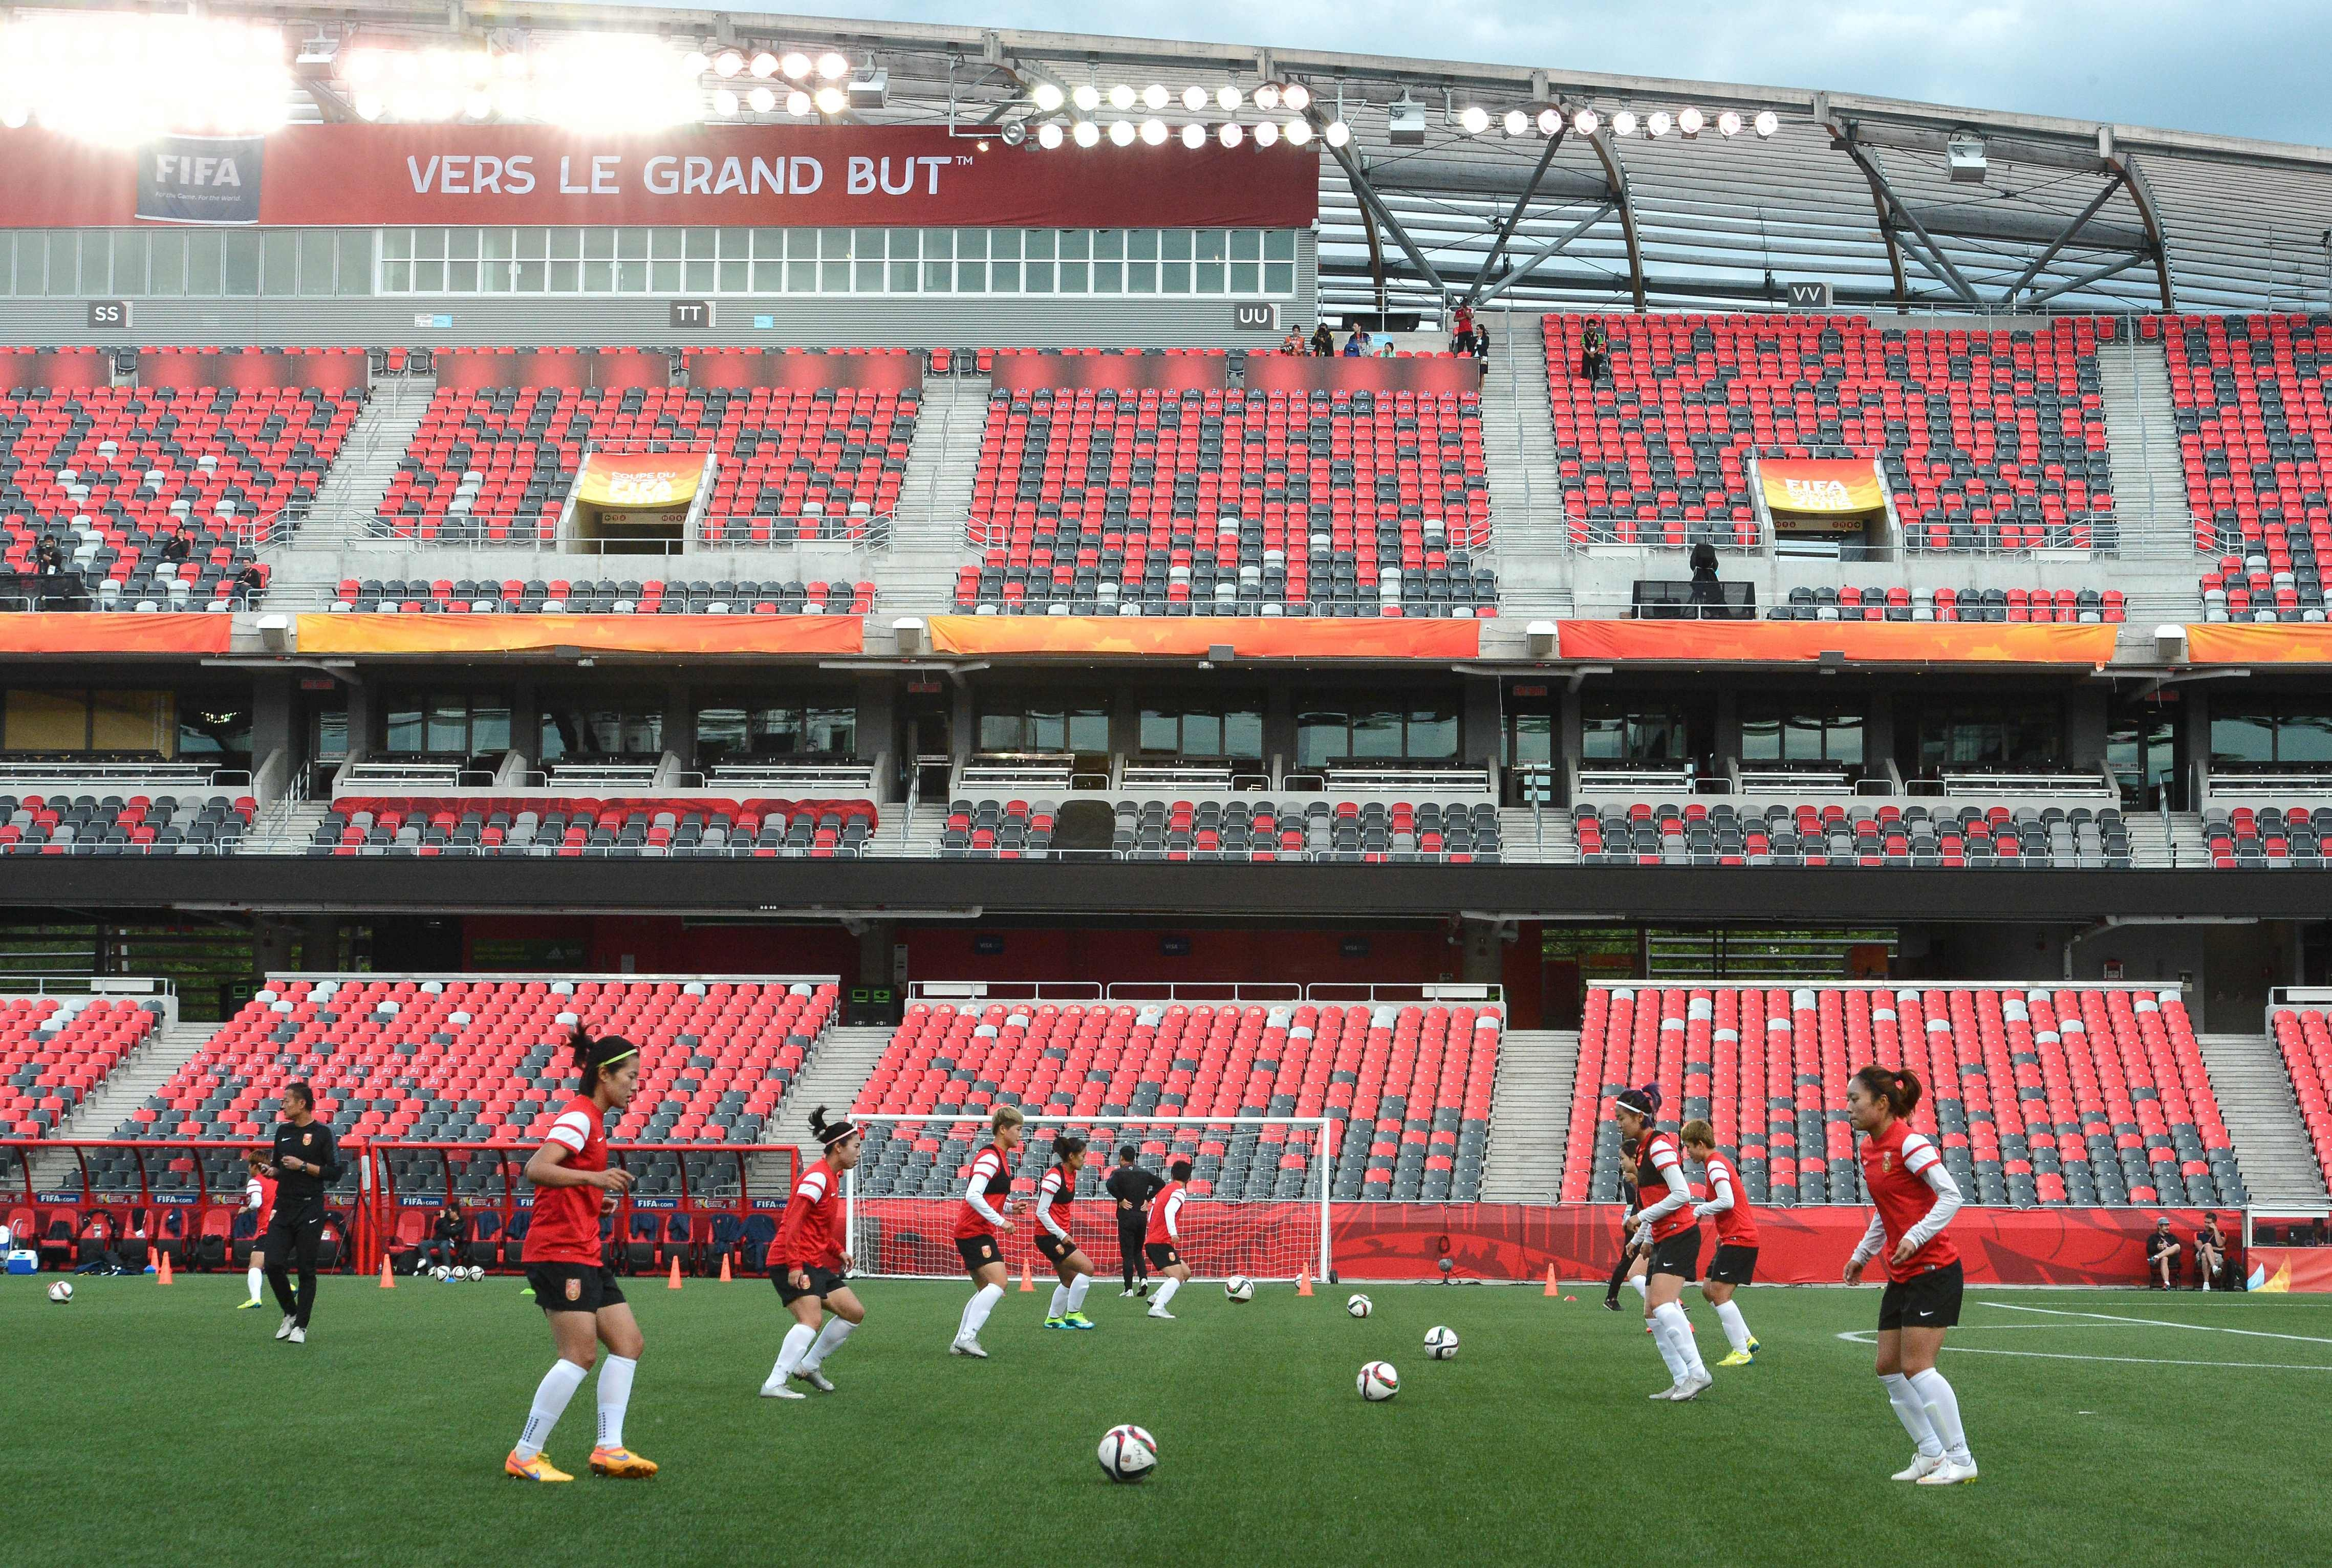 Members of China's national team take part in a training session at Lansdowne Stadium in Ottawa on June 25, 2015 on the eve of their 2015 FIFA Women's World Cup quarterfinal match against the US.